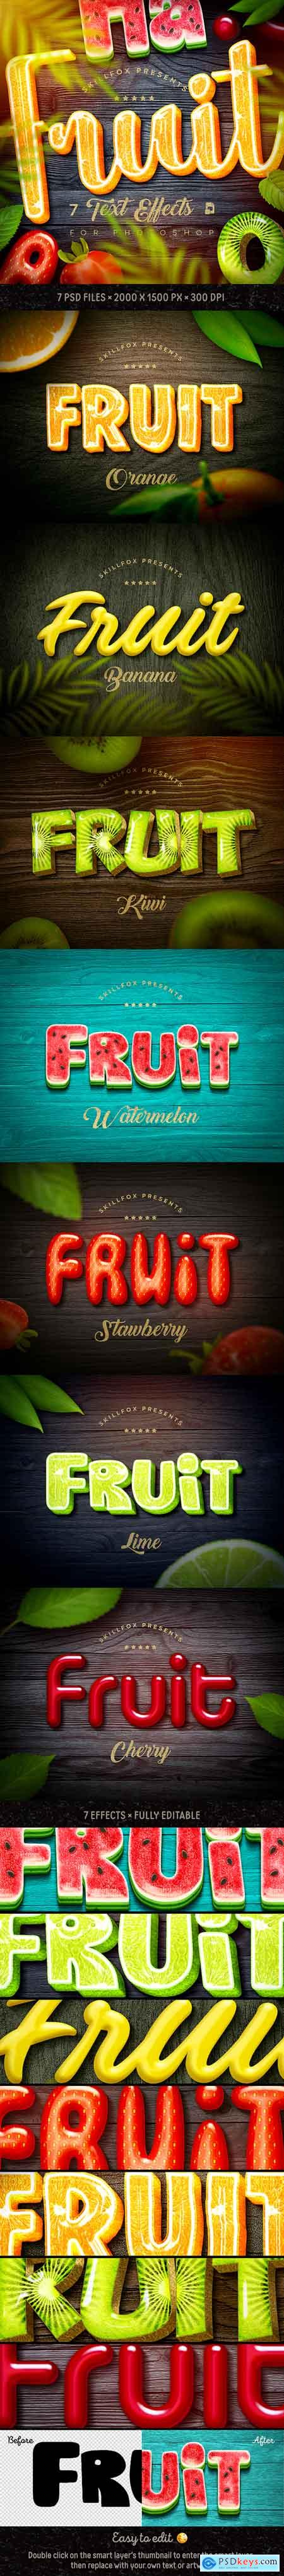 Graphicriver Fruit Text Effects х7 Psd